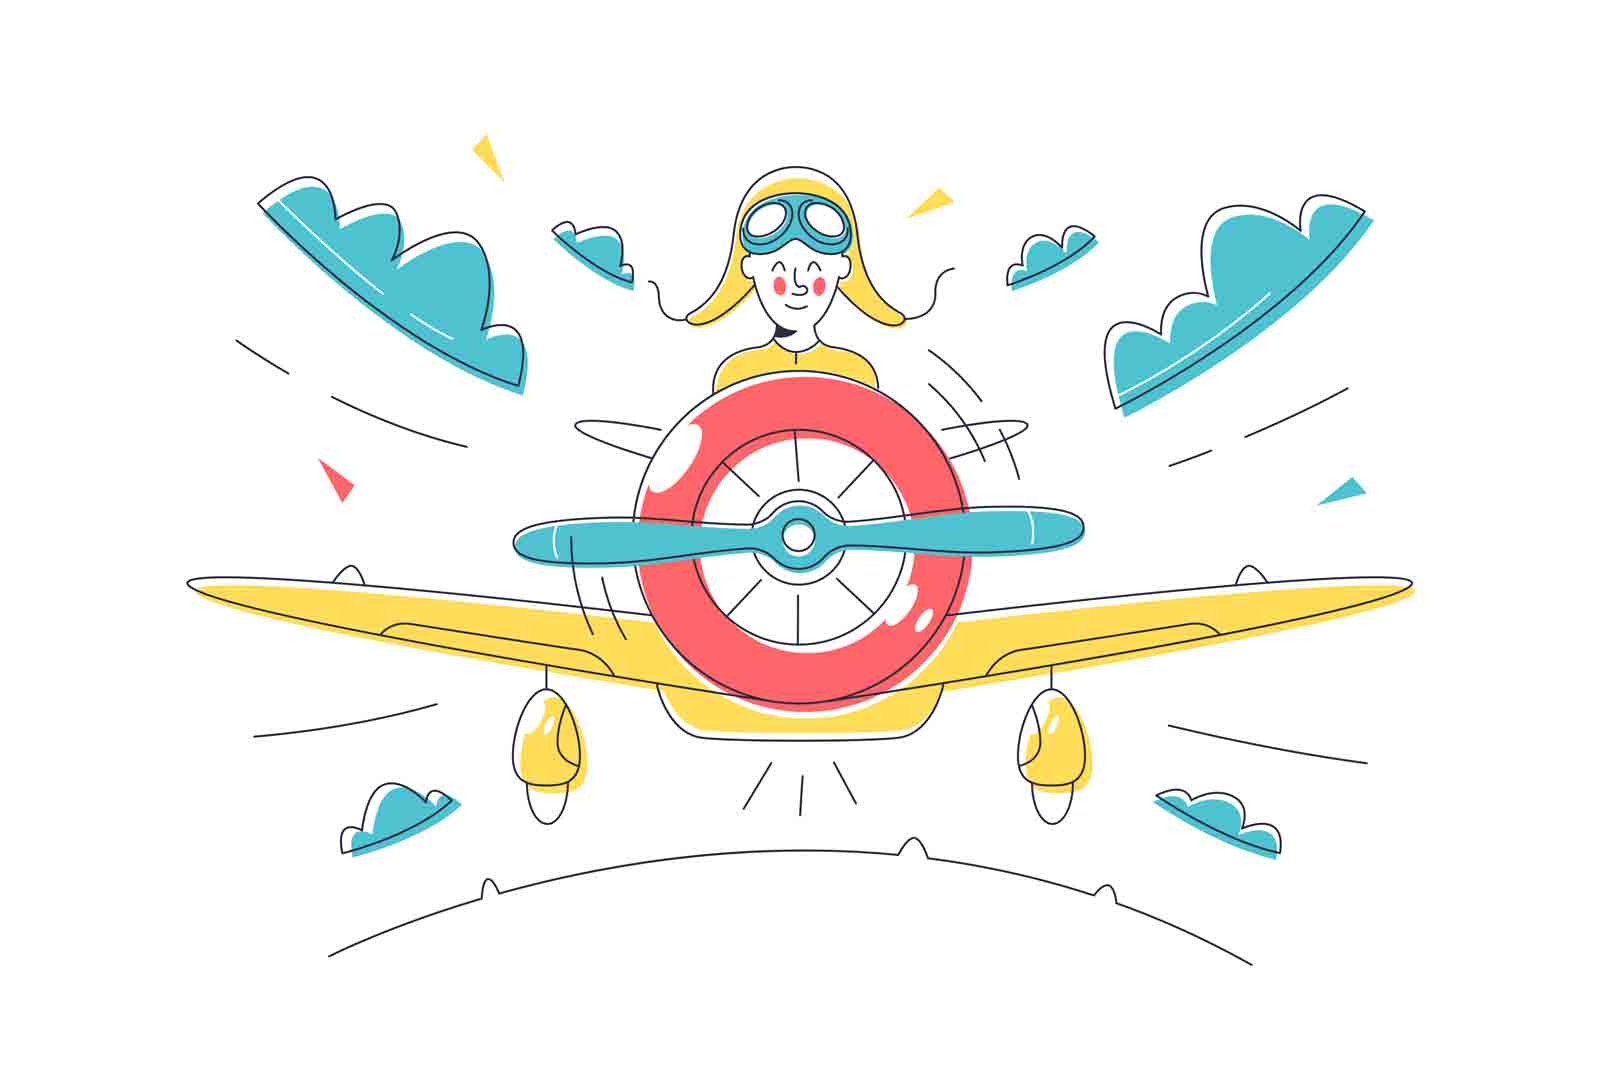 Pilot control plane and fly in sky vector illustration. Happy aviator perform test fly flat style. Air transport, vehicle, aviation concept